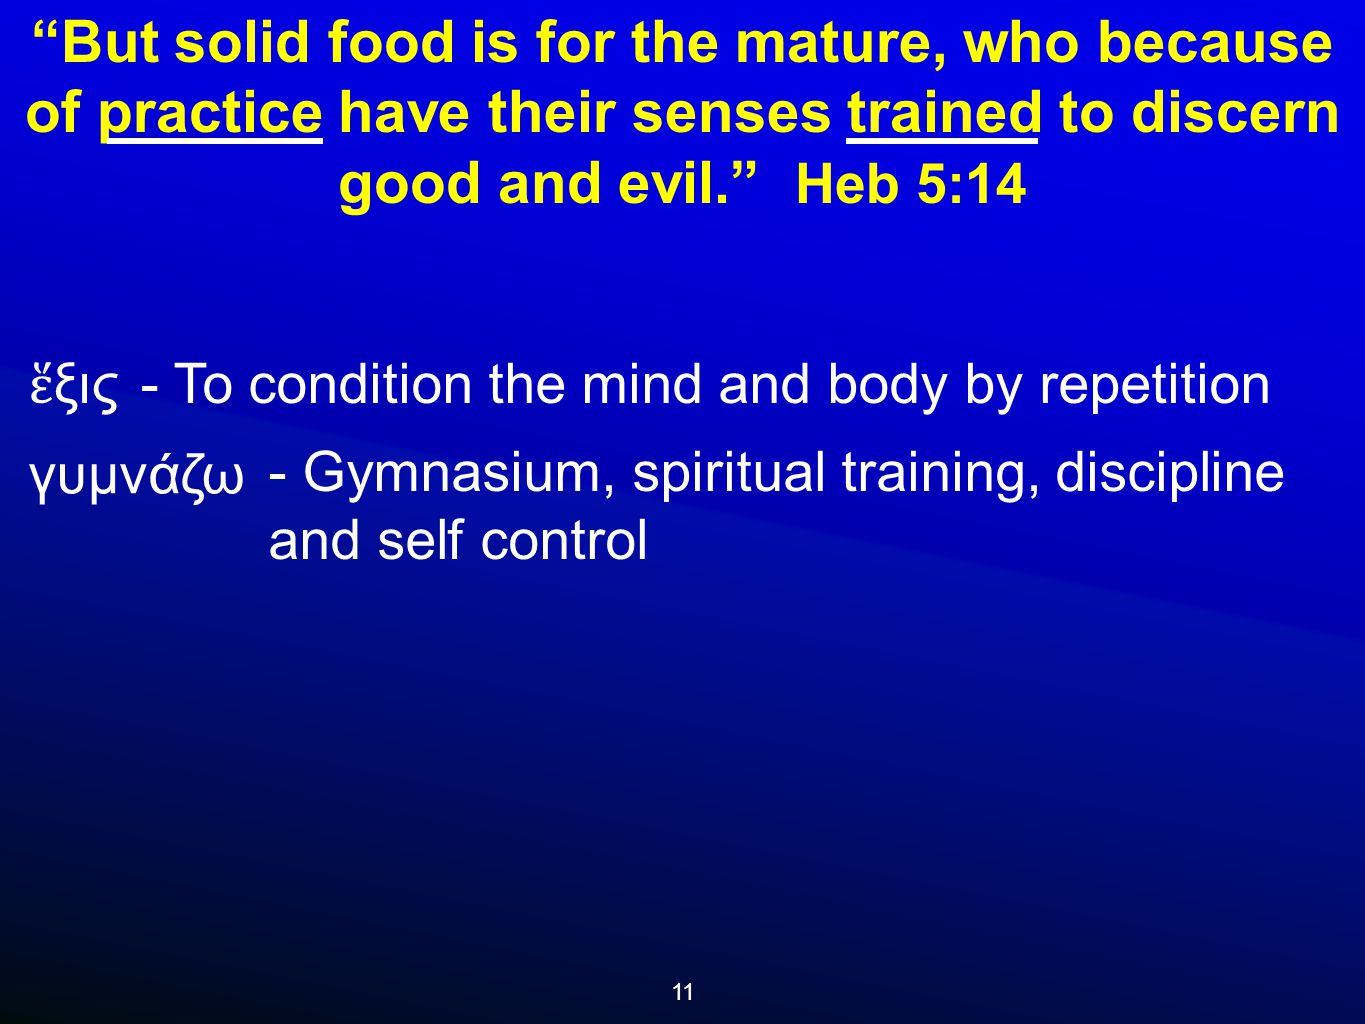 11 But solid food is for the mature, who because of practice have their senses trained to discern good and evil. Heb 5:14 γυμνάζω ἕ ξις - To condition the mind and body by repetition - Gymnasium, spiritual training, discipline and self control